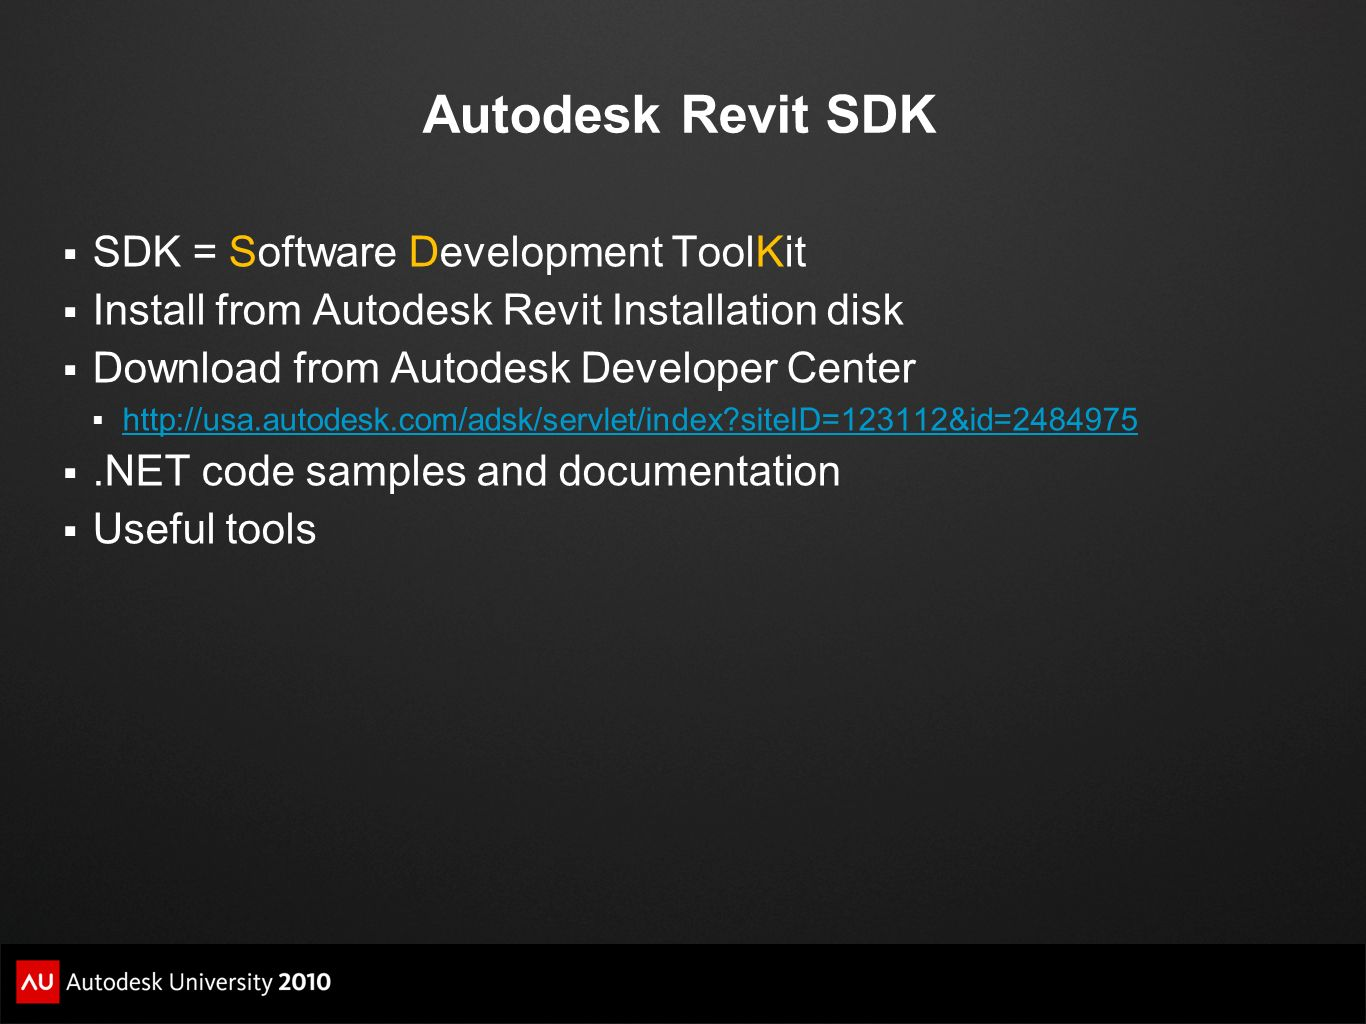 Autodesk Revit SDK SDK = Software Development ToolKit